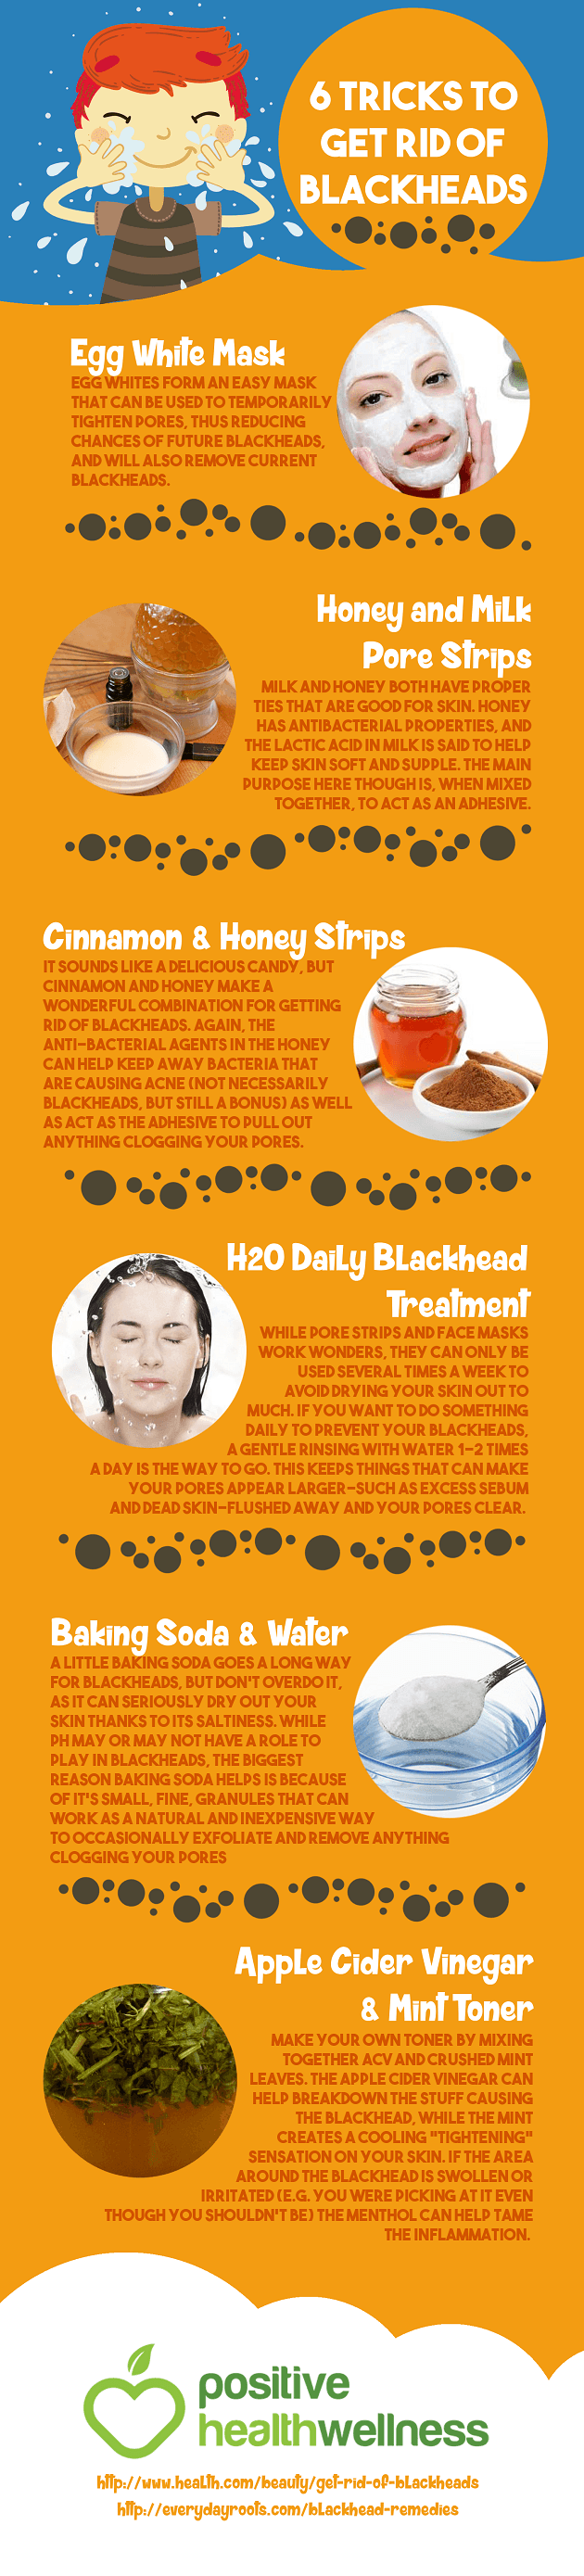 6 Tricks to Get Rid of Blackheads